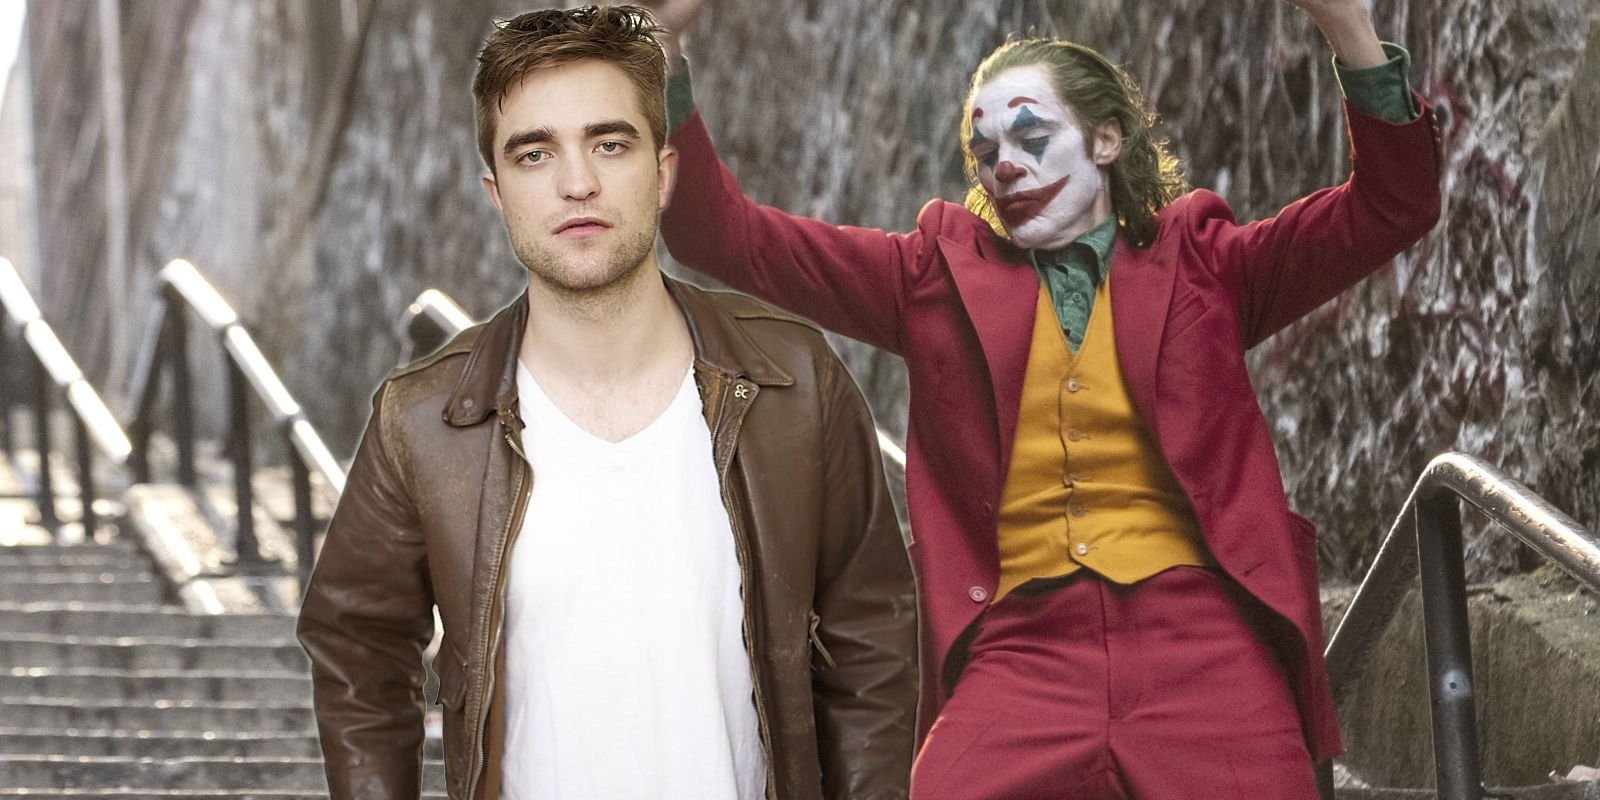 El Joker de Joaquin Phoenix no conocerá al Batman de Robert Pattinson